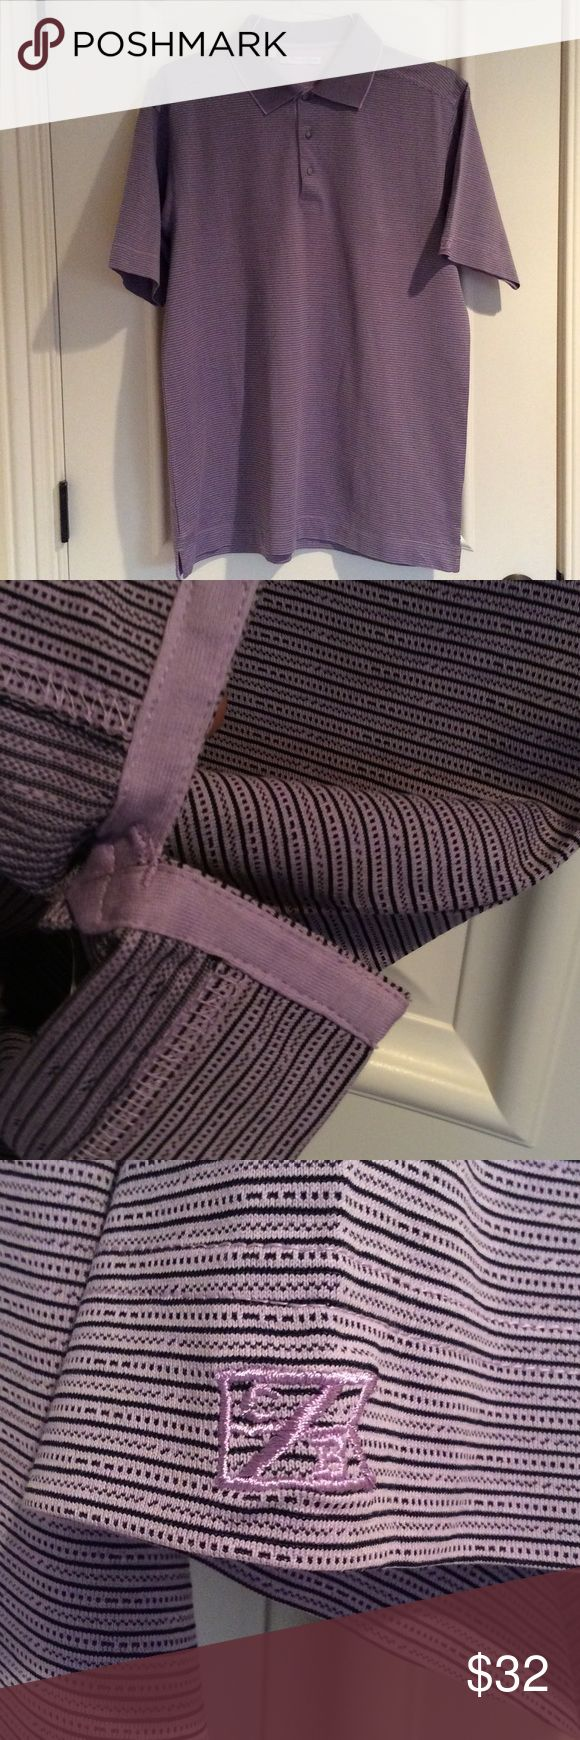 Cutter & Buck polo Lavender and black polo shirt by Cutter & Buck.  Reinforced slits at hem, as shown. Fine quality. Cutter & Buck Shirts Polos